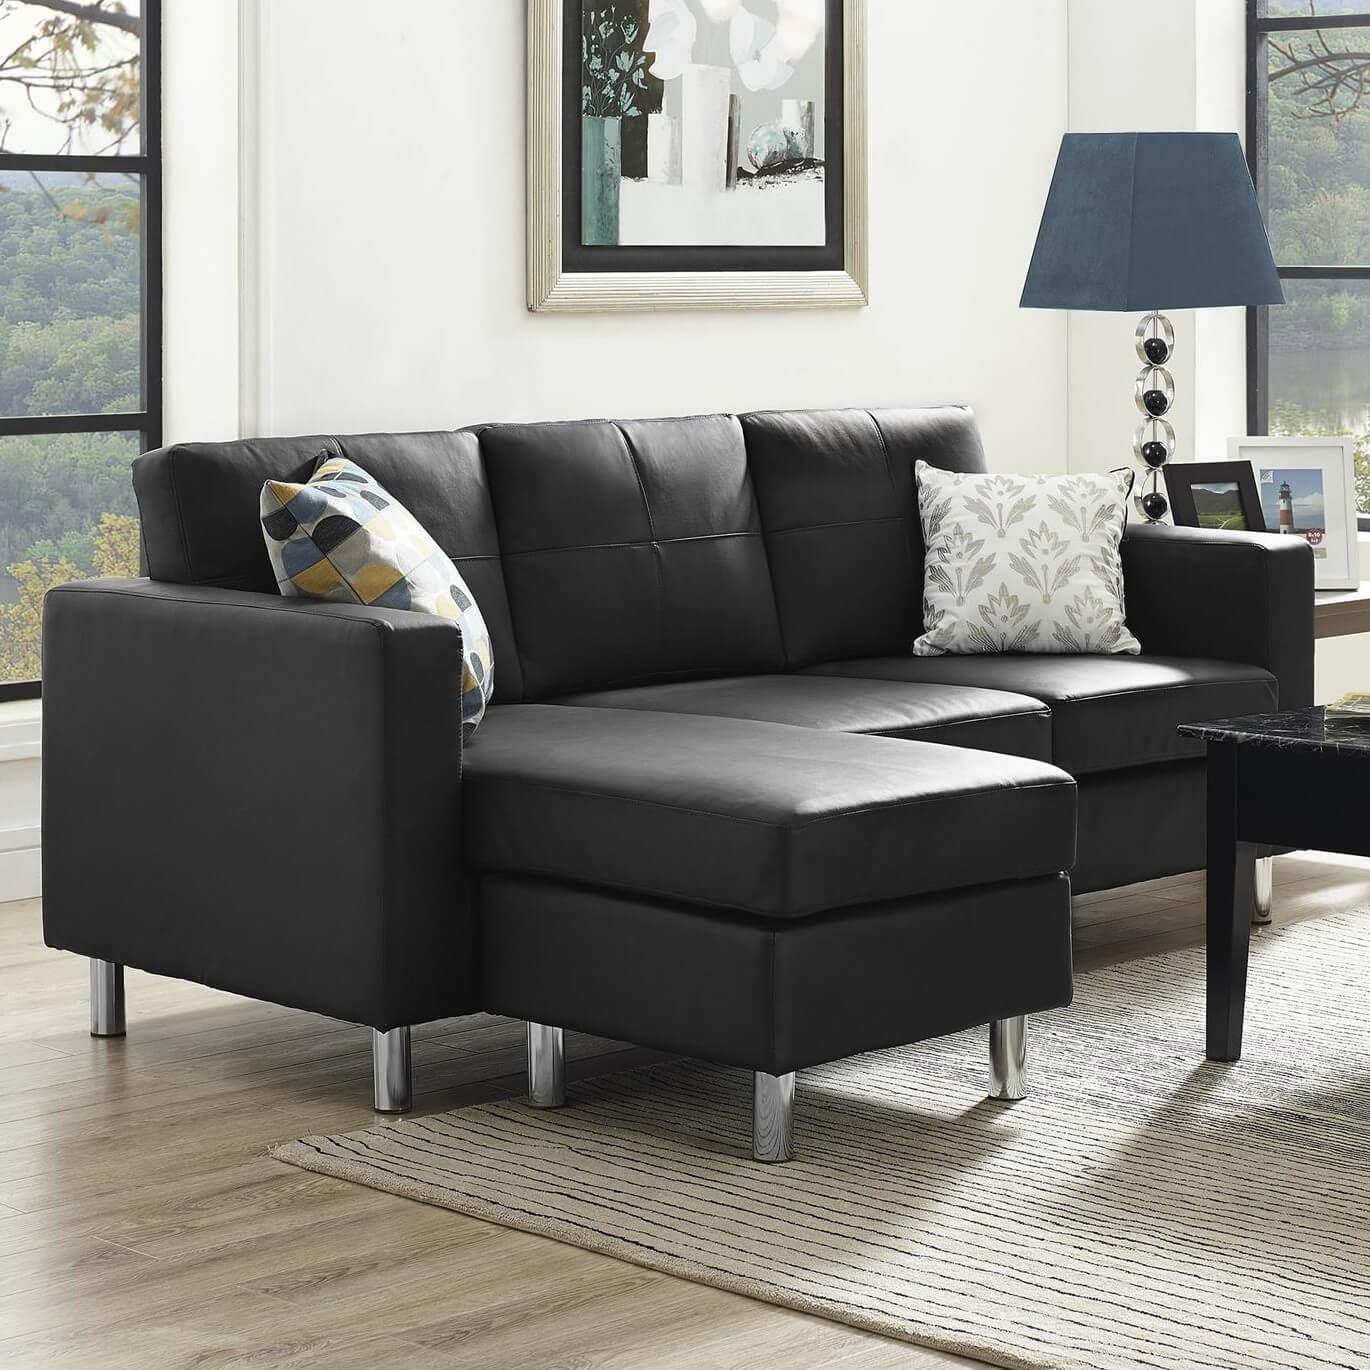 13 Sectional Sofas Under $500 (Several Styles) for Leather and Suede Sectional